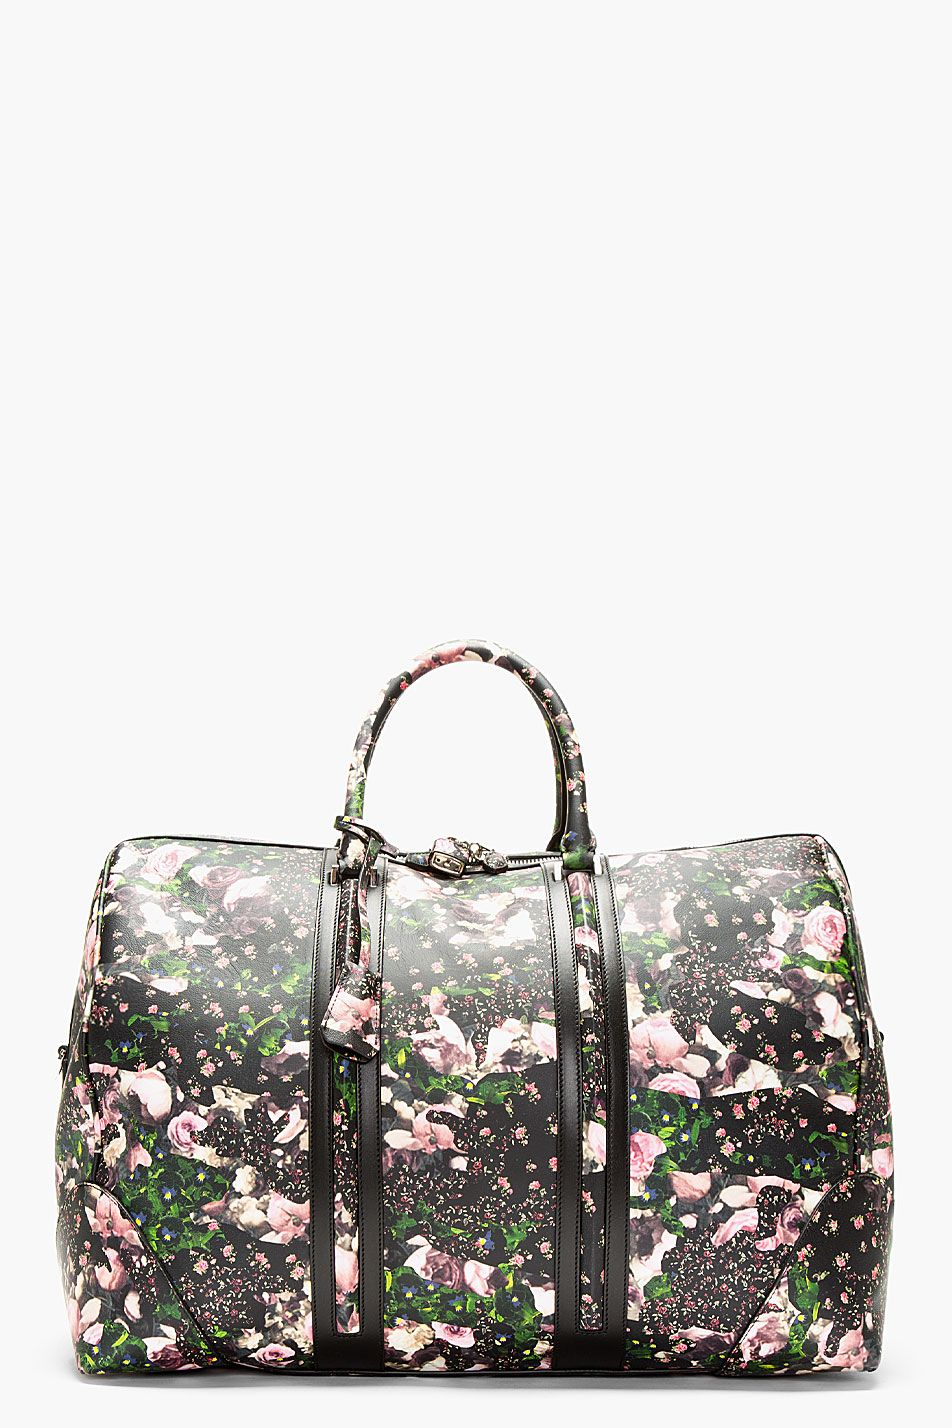 GIVENCHY Black leather floral padlocked LC duffle. Printed BagsDuffle ... a83851034a09f